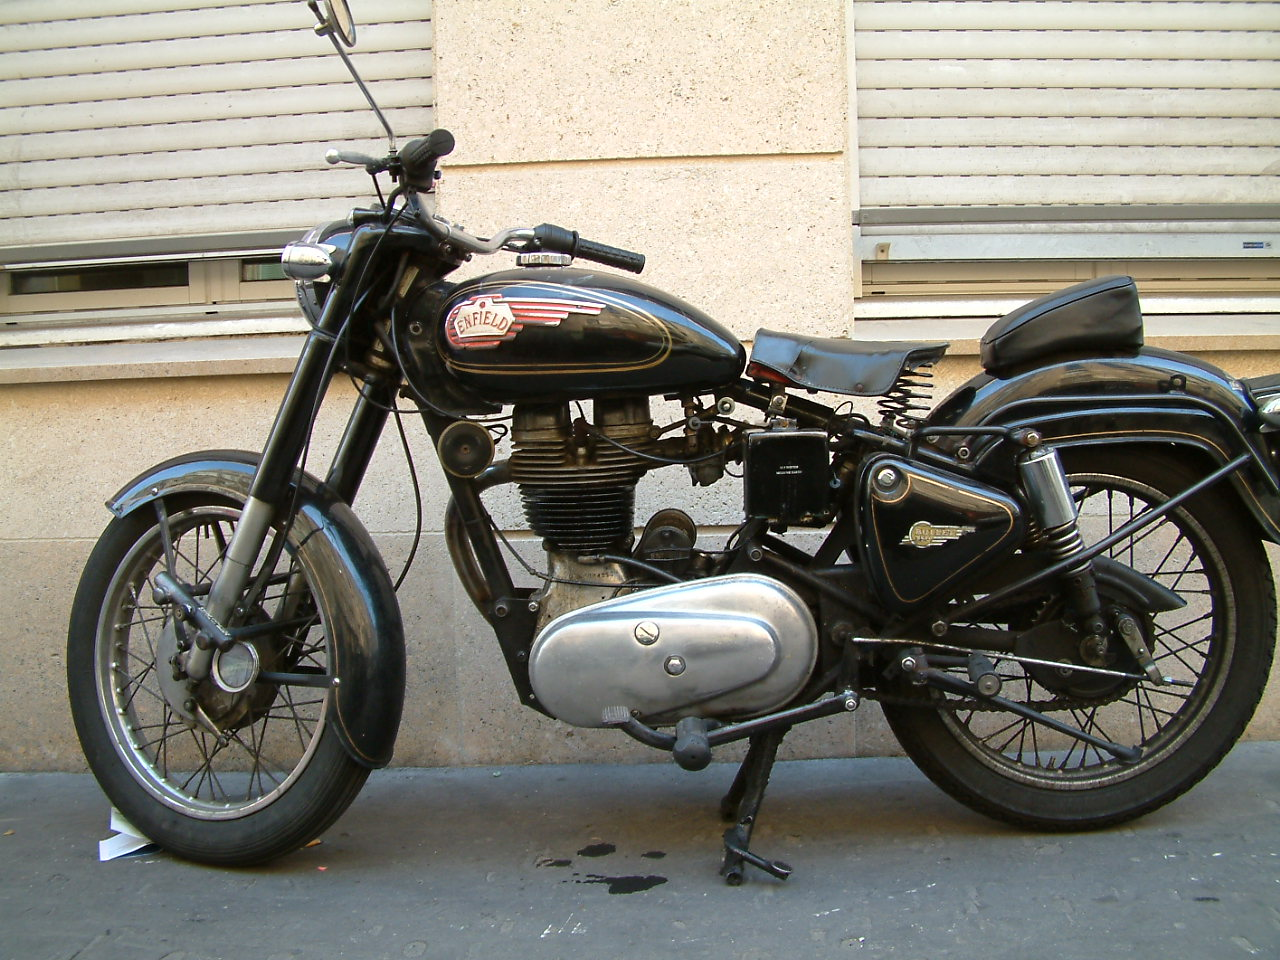 Royal Enfield Bullet 500 Classic images #127686